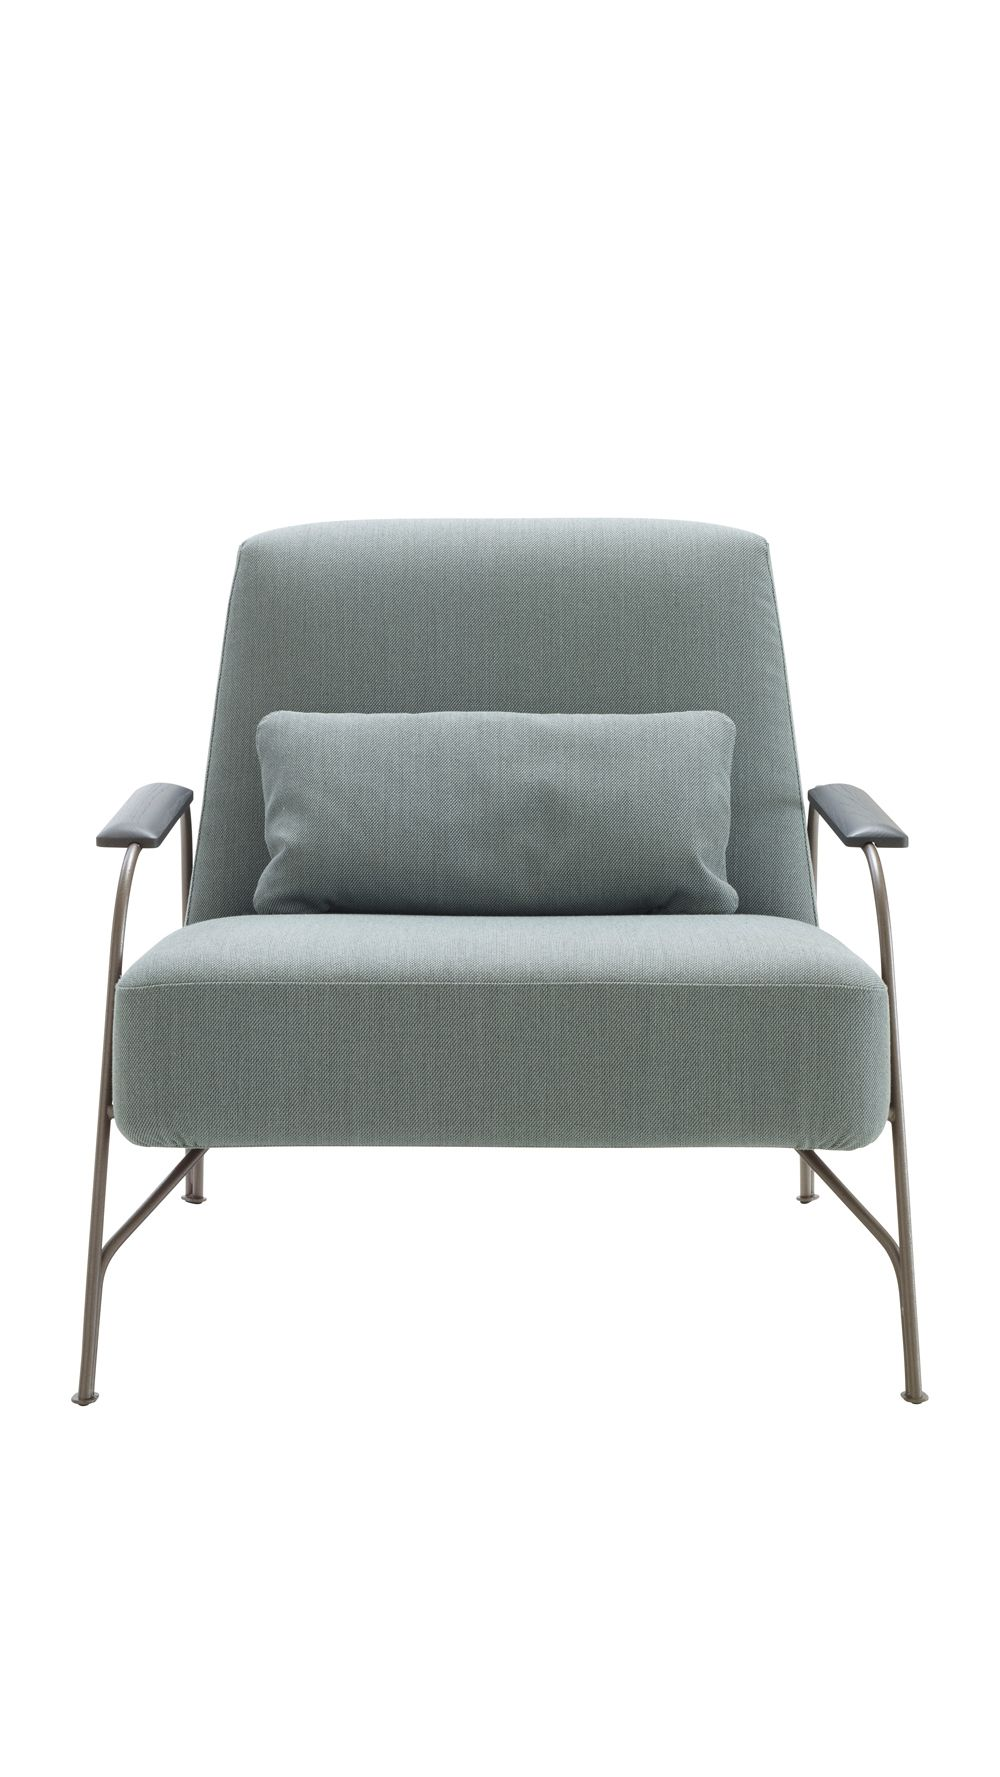 Attractive Humphrey Armchair Designed By Evangelos Vasileiou For Ligne Roset |  Available At Linea Inc. Modern